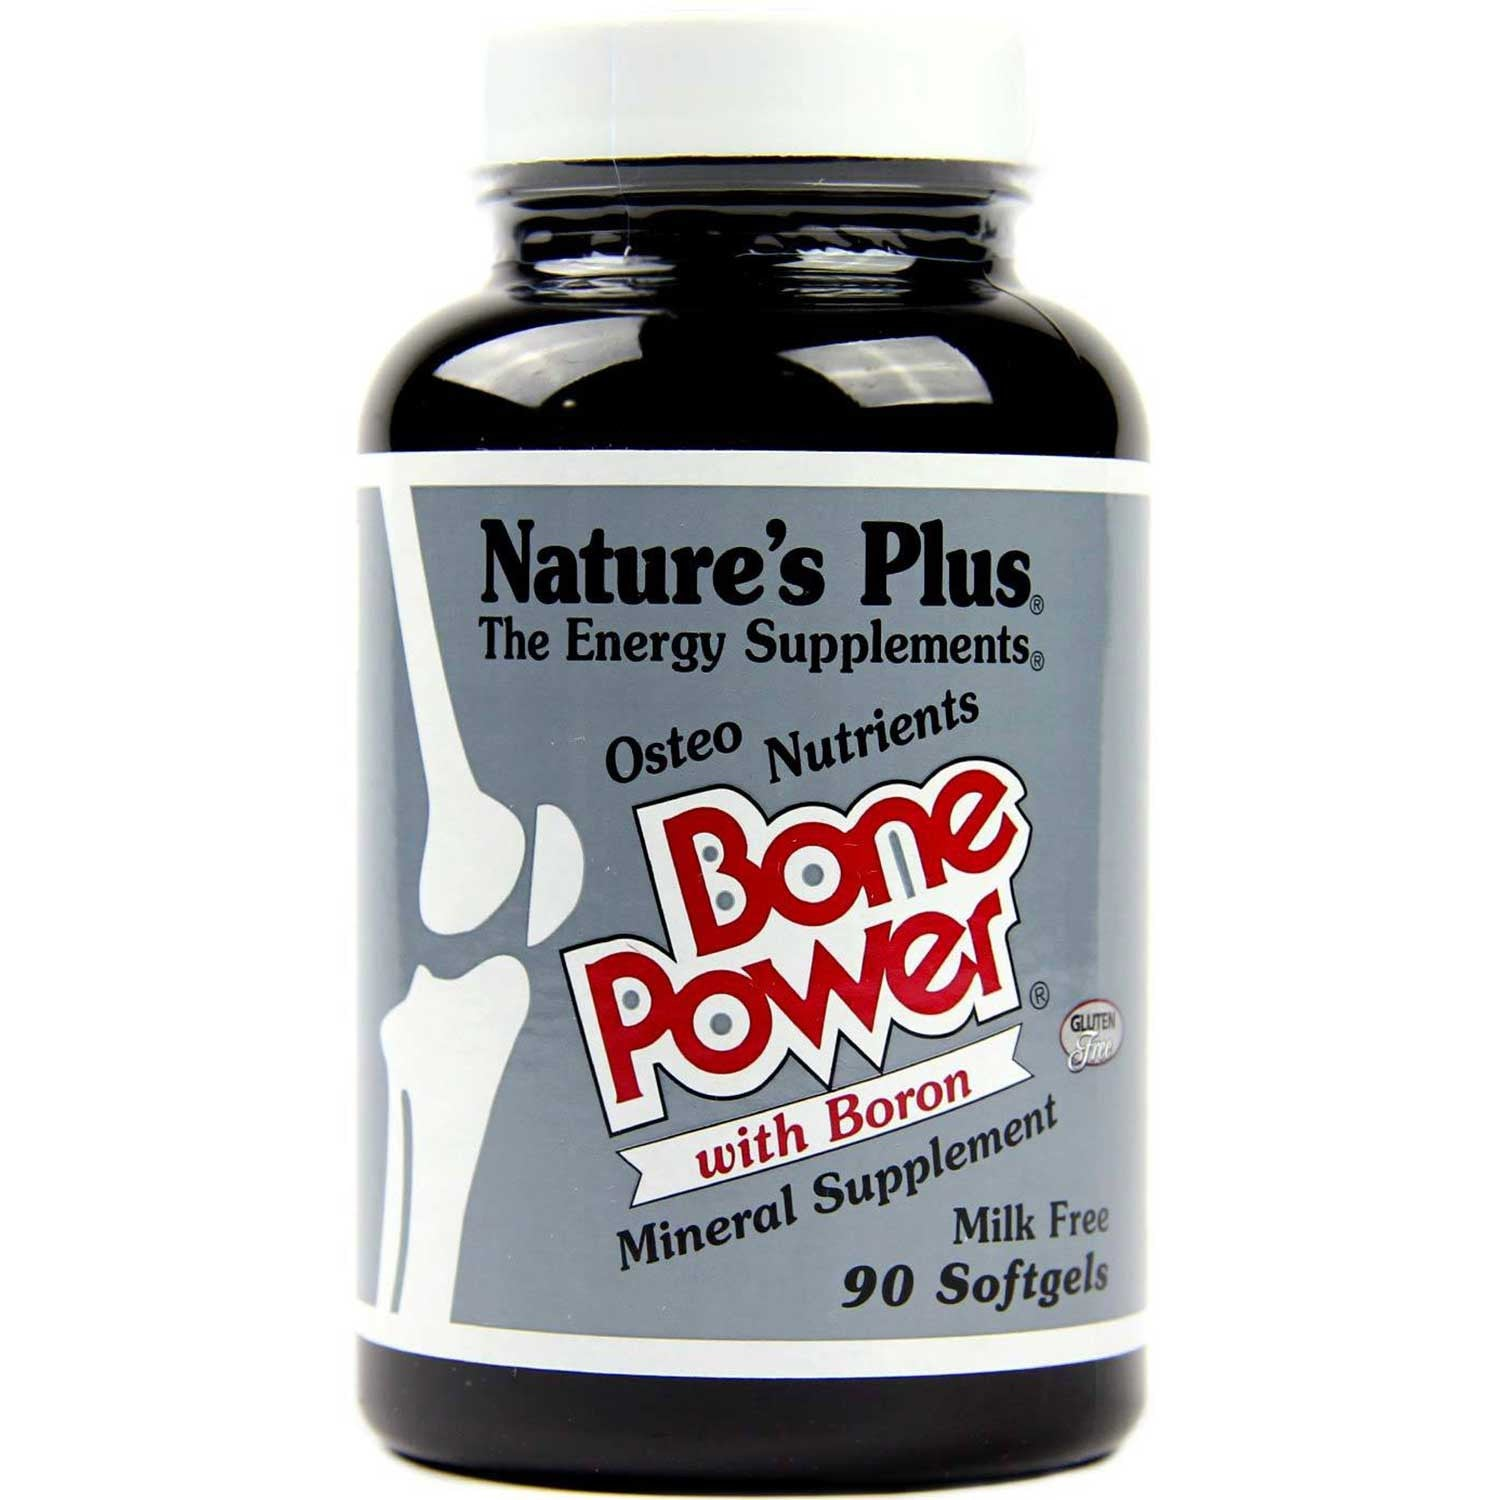 Natures Plus Bone Power (Osteo Nutrients w/Boron), 90 sgls.-NaturesWisdom